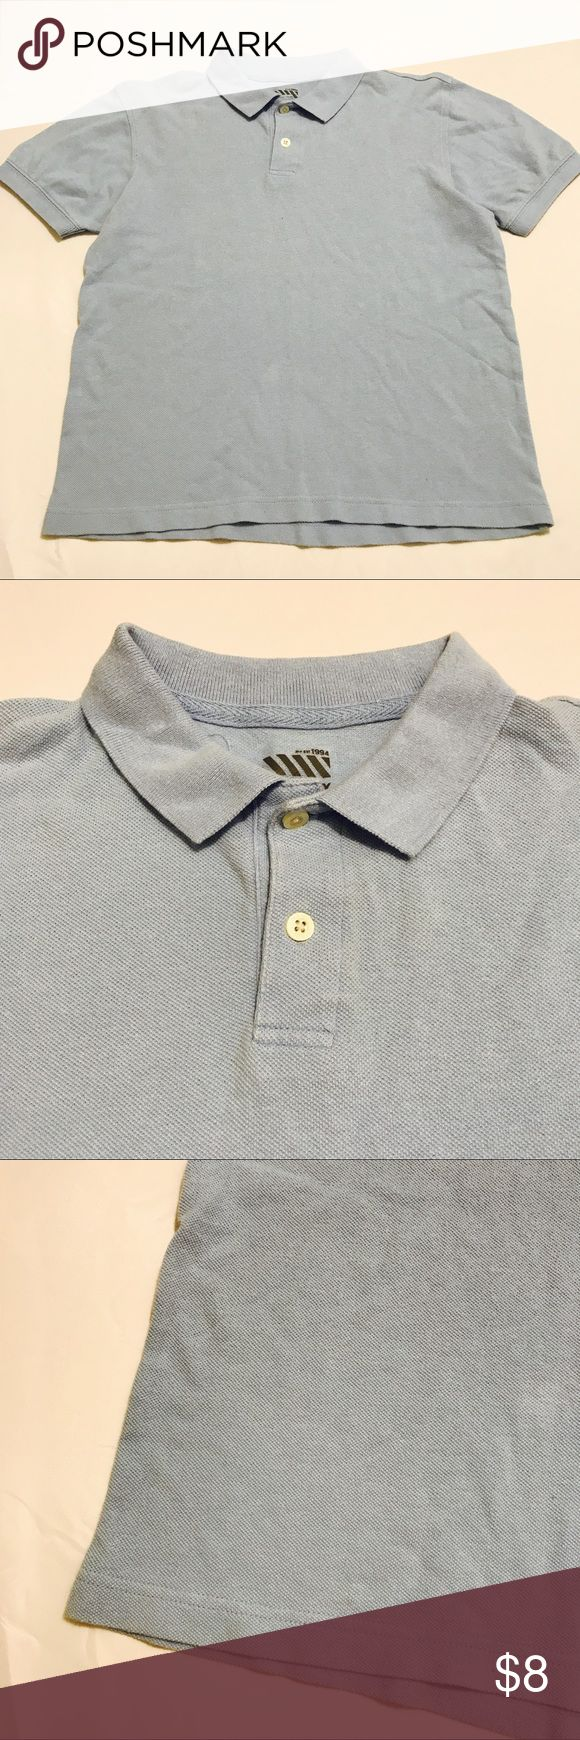 Old Navy Blue Polo Collared Shirt L 10/12 Old Navy Blue Polo Collared Shirt L 10/12 Excellent condition no flaws 5.05 oz Old Navy Shirts & Tops Polos